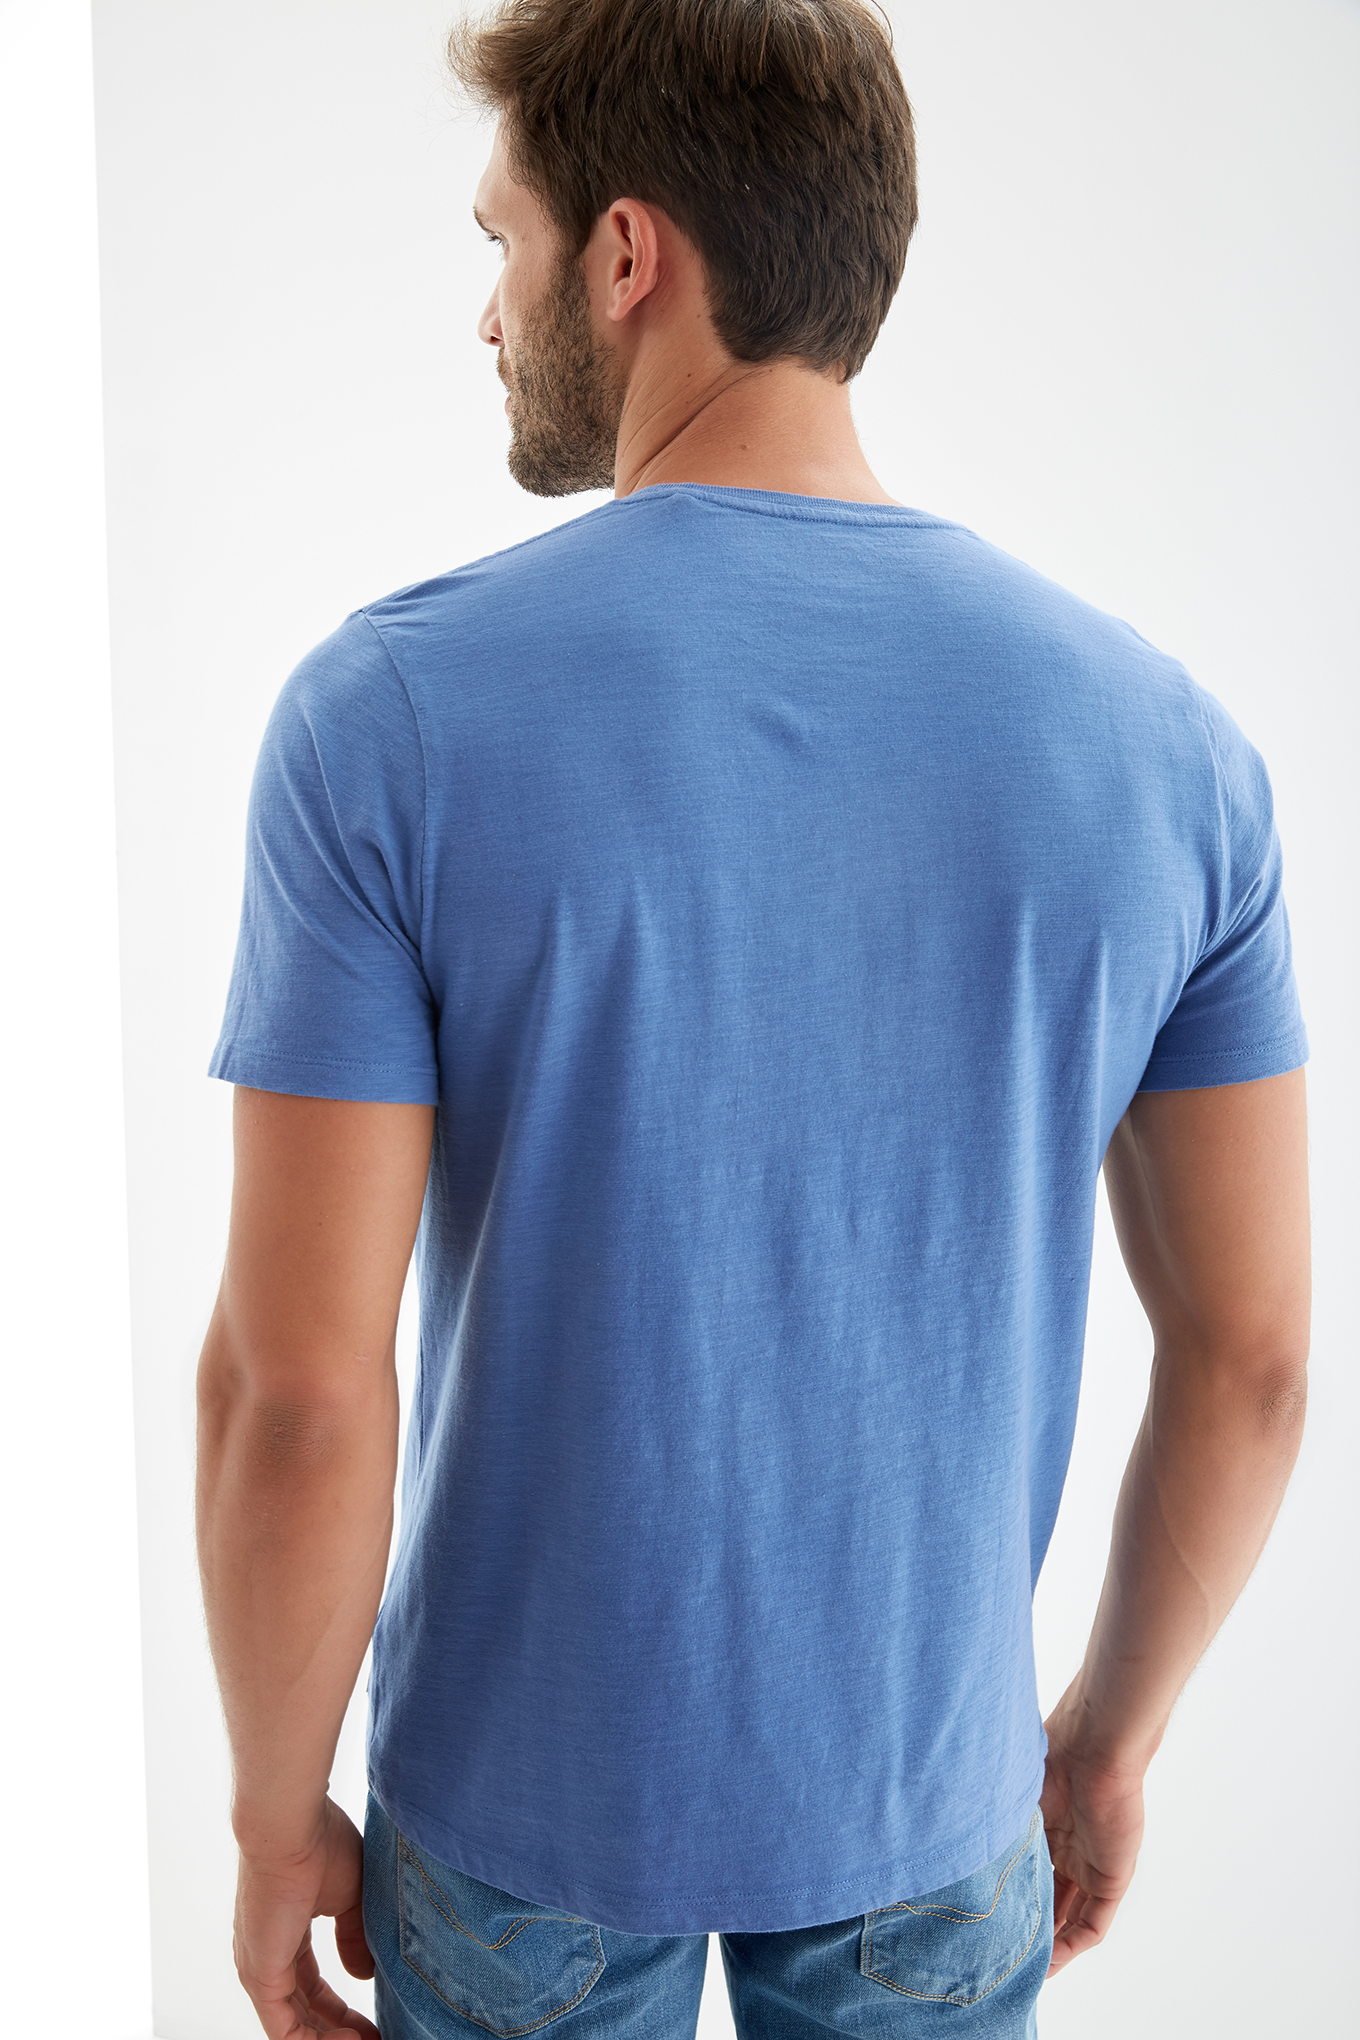 T-Shirt Blue Sport Man